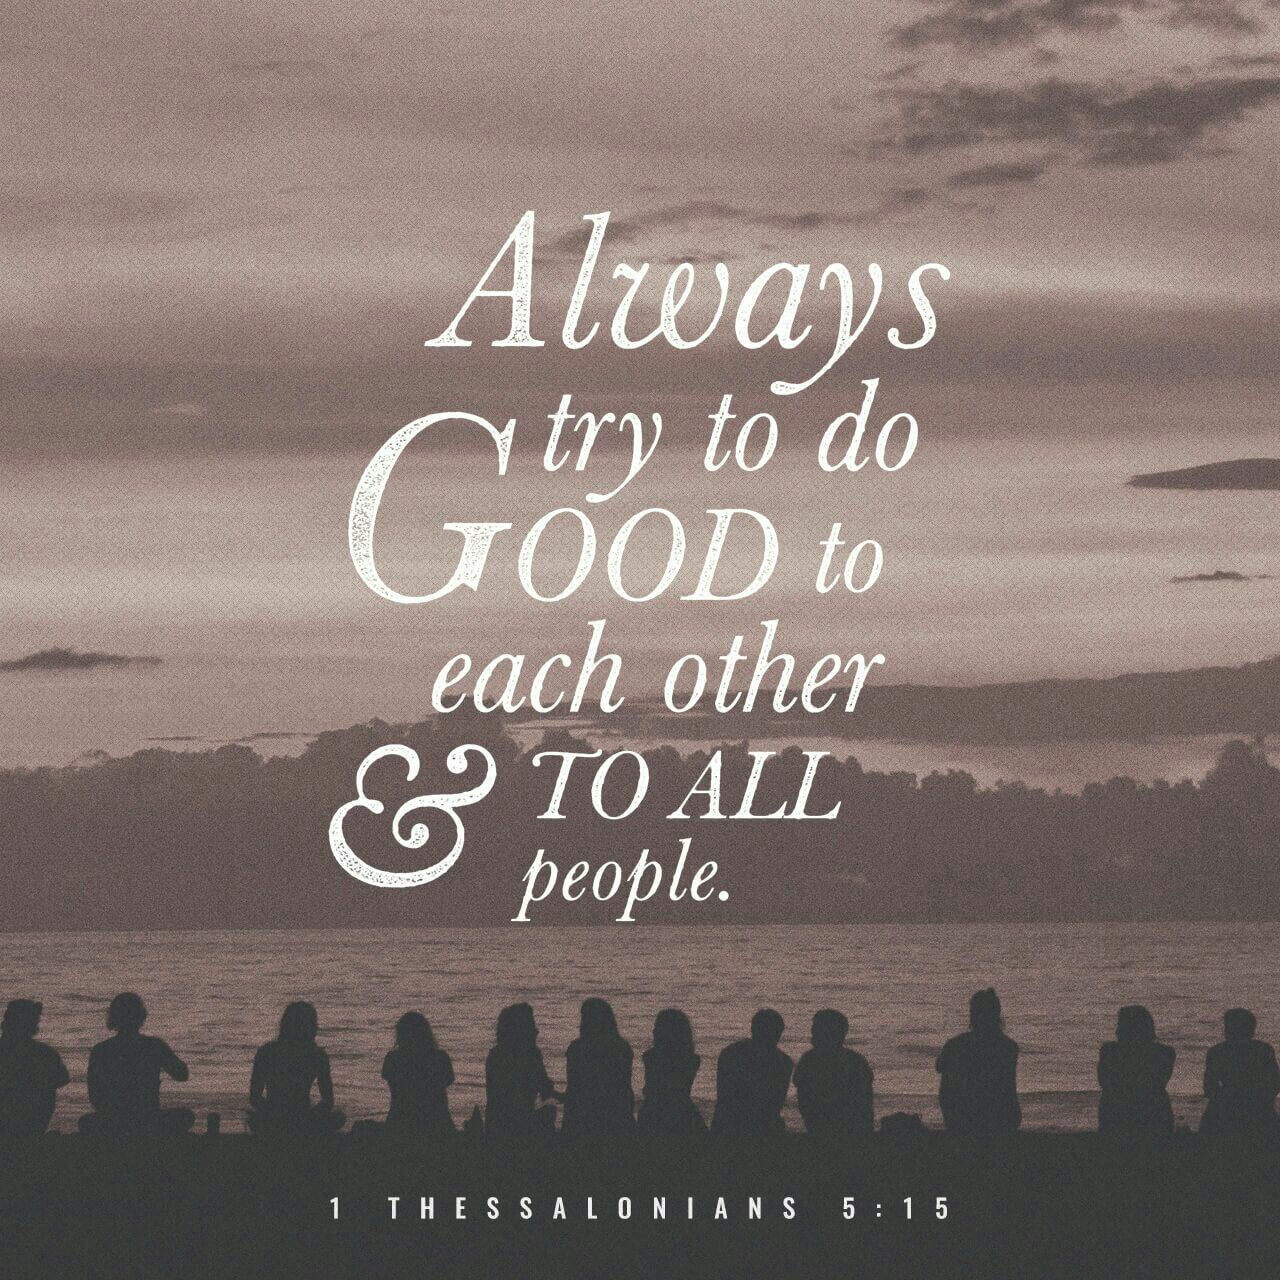 Grandridge | 1 thessalonians, Verse of the day, 1 thessalonians 5